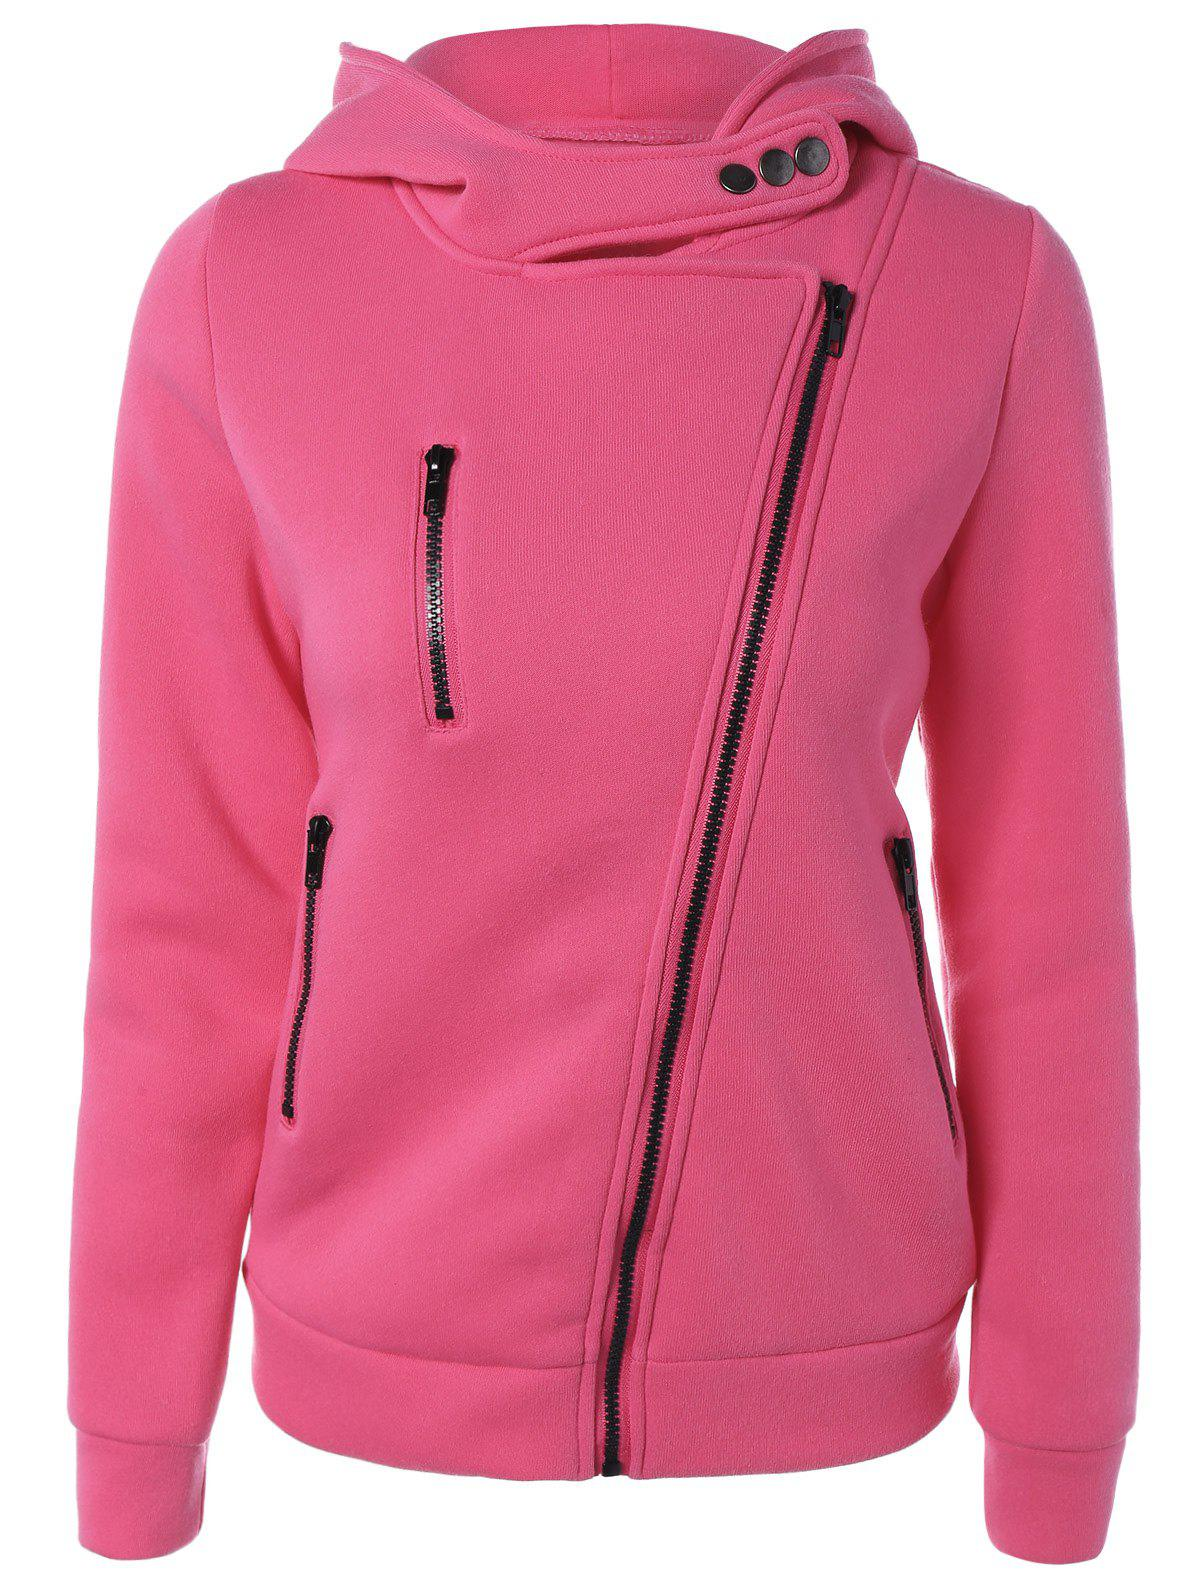 Inclined Zipper Buttoned Hoodie - ROSE MADDER S